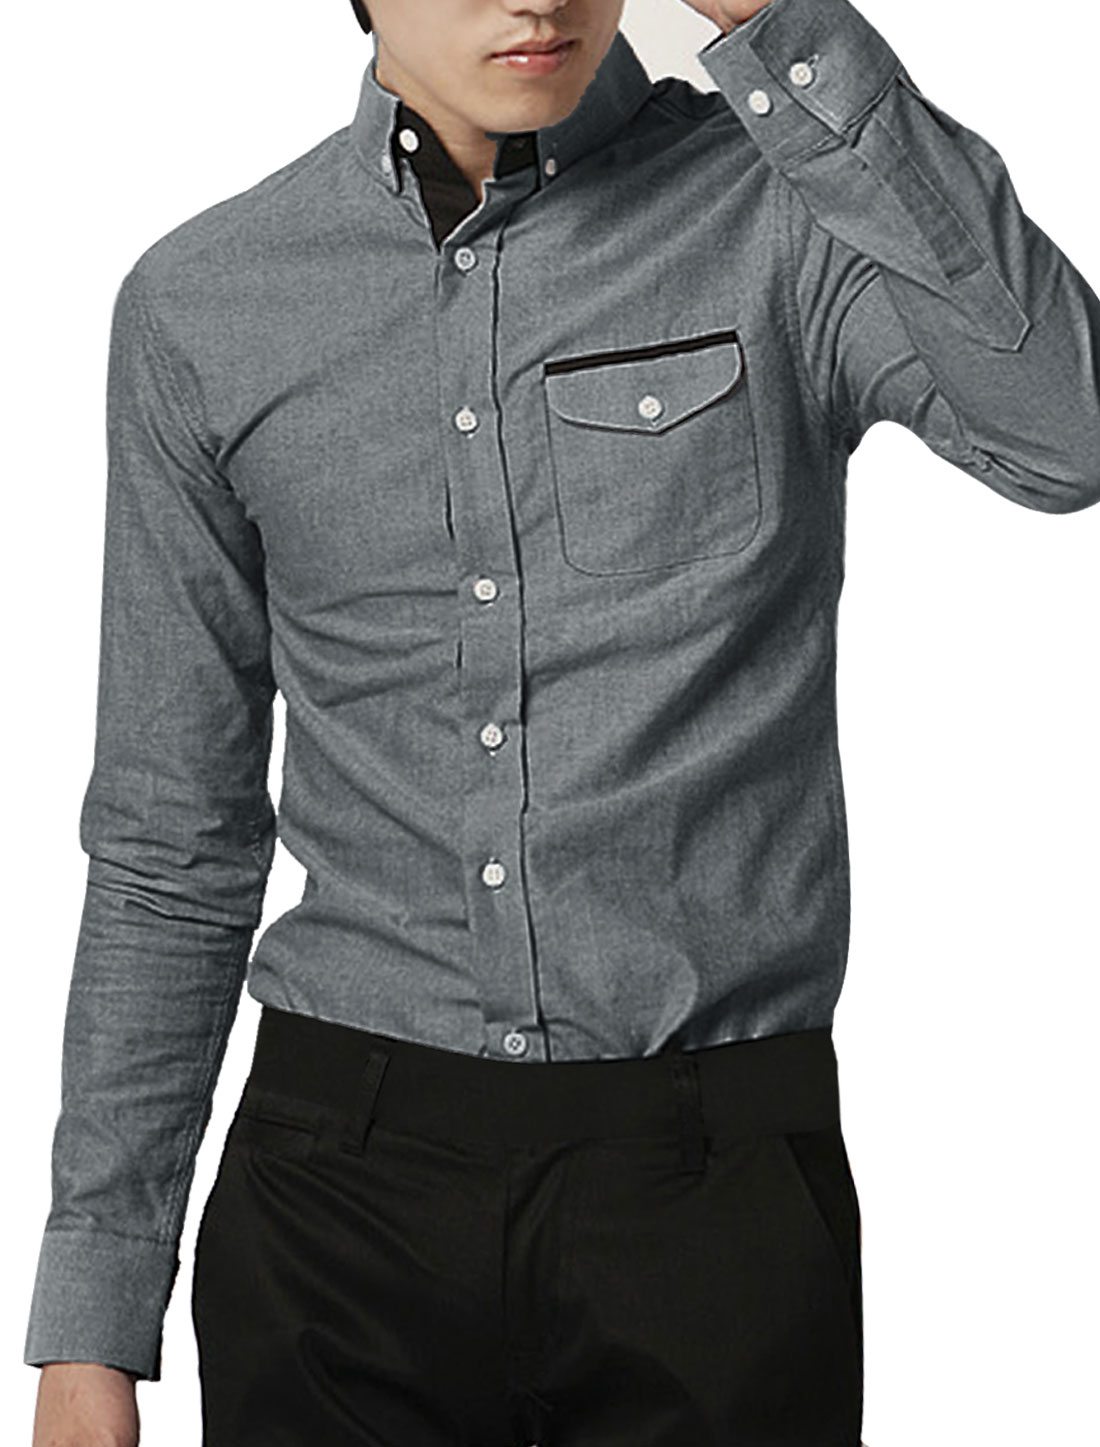 Mens One Pocket Button Down Point Collar Long Sleeve Dark Gray Shirt Top M